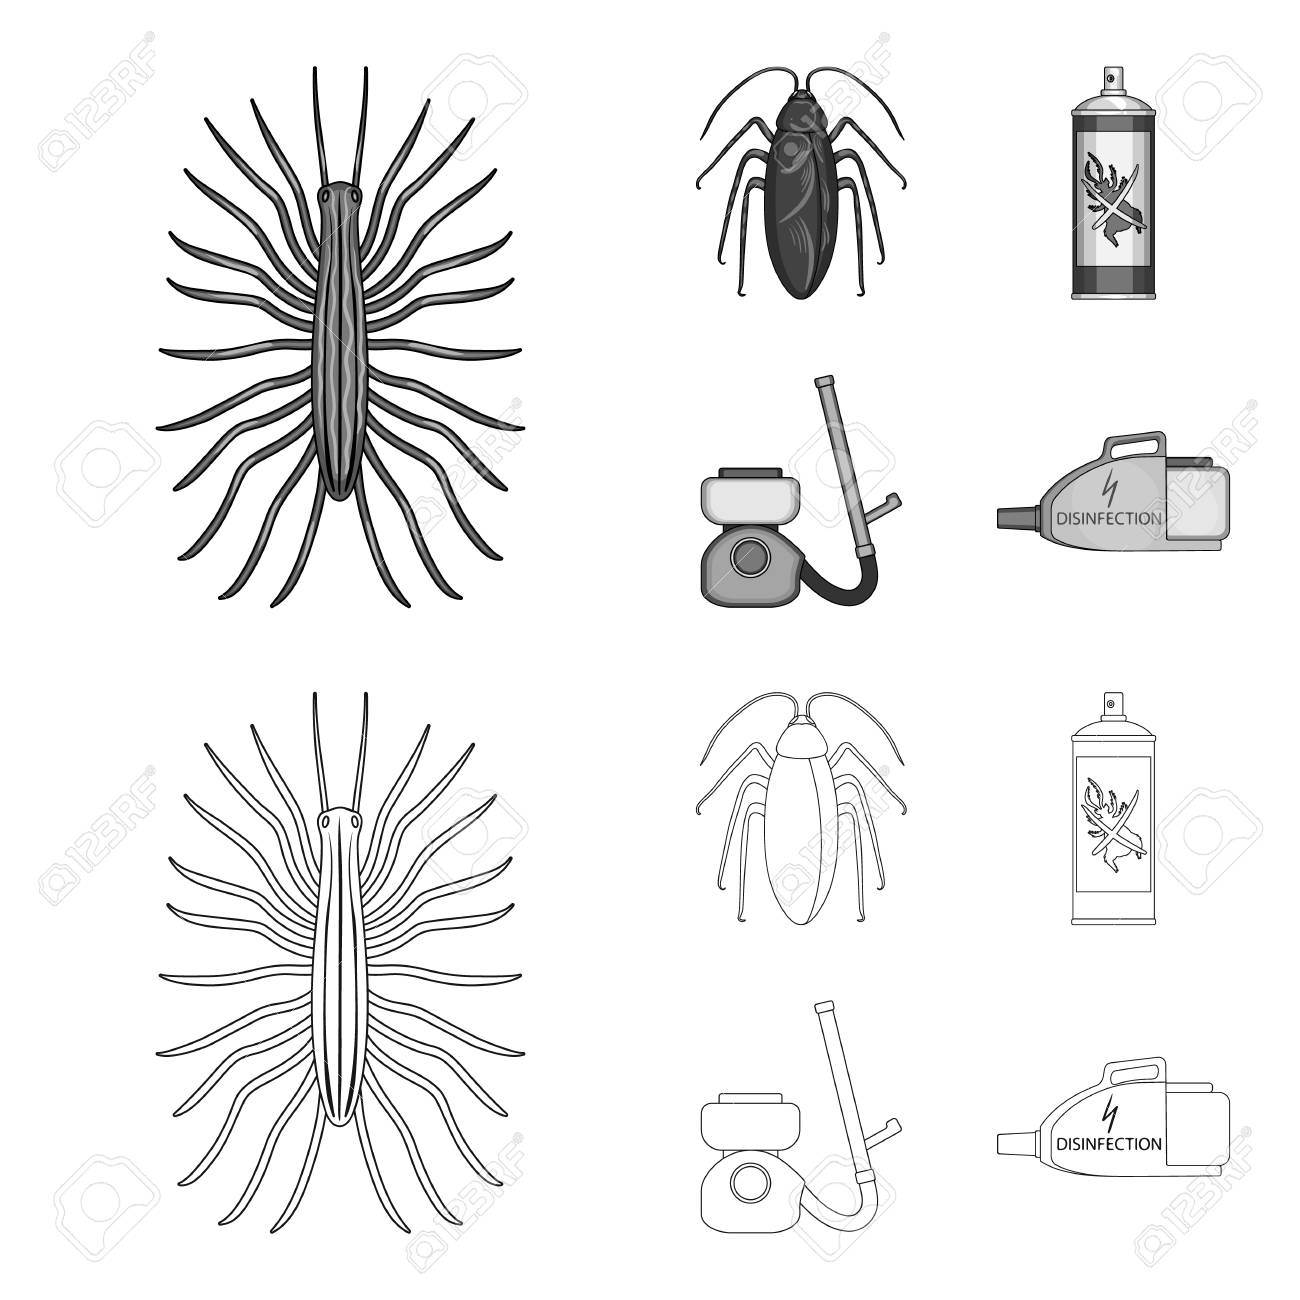 hight resolution of cockroach and equipment for disinfection outline monochrome icons in set collection for design pest